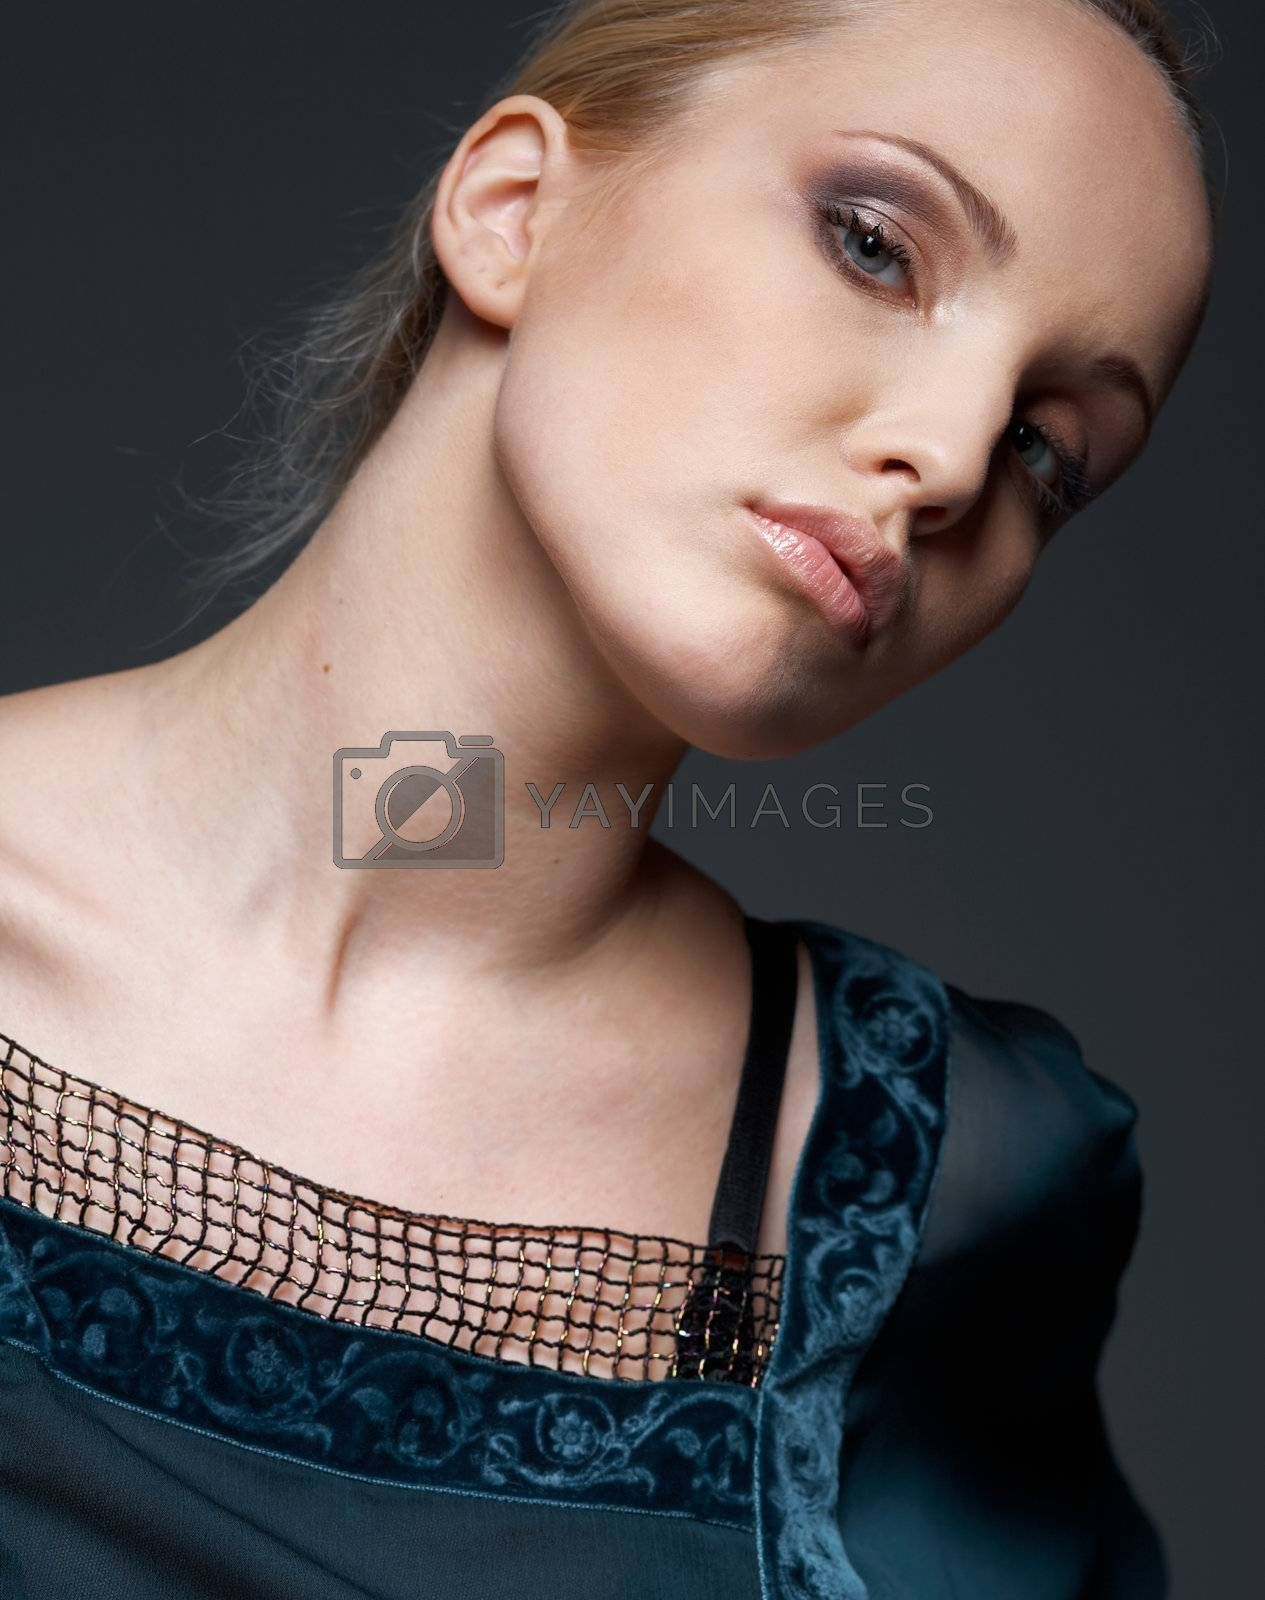 Close-up portrait of a beautiful model dressed in vintage blouse, posing.